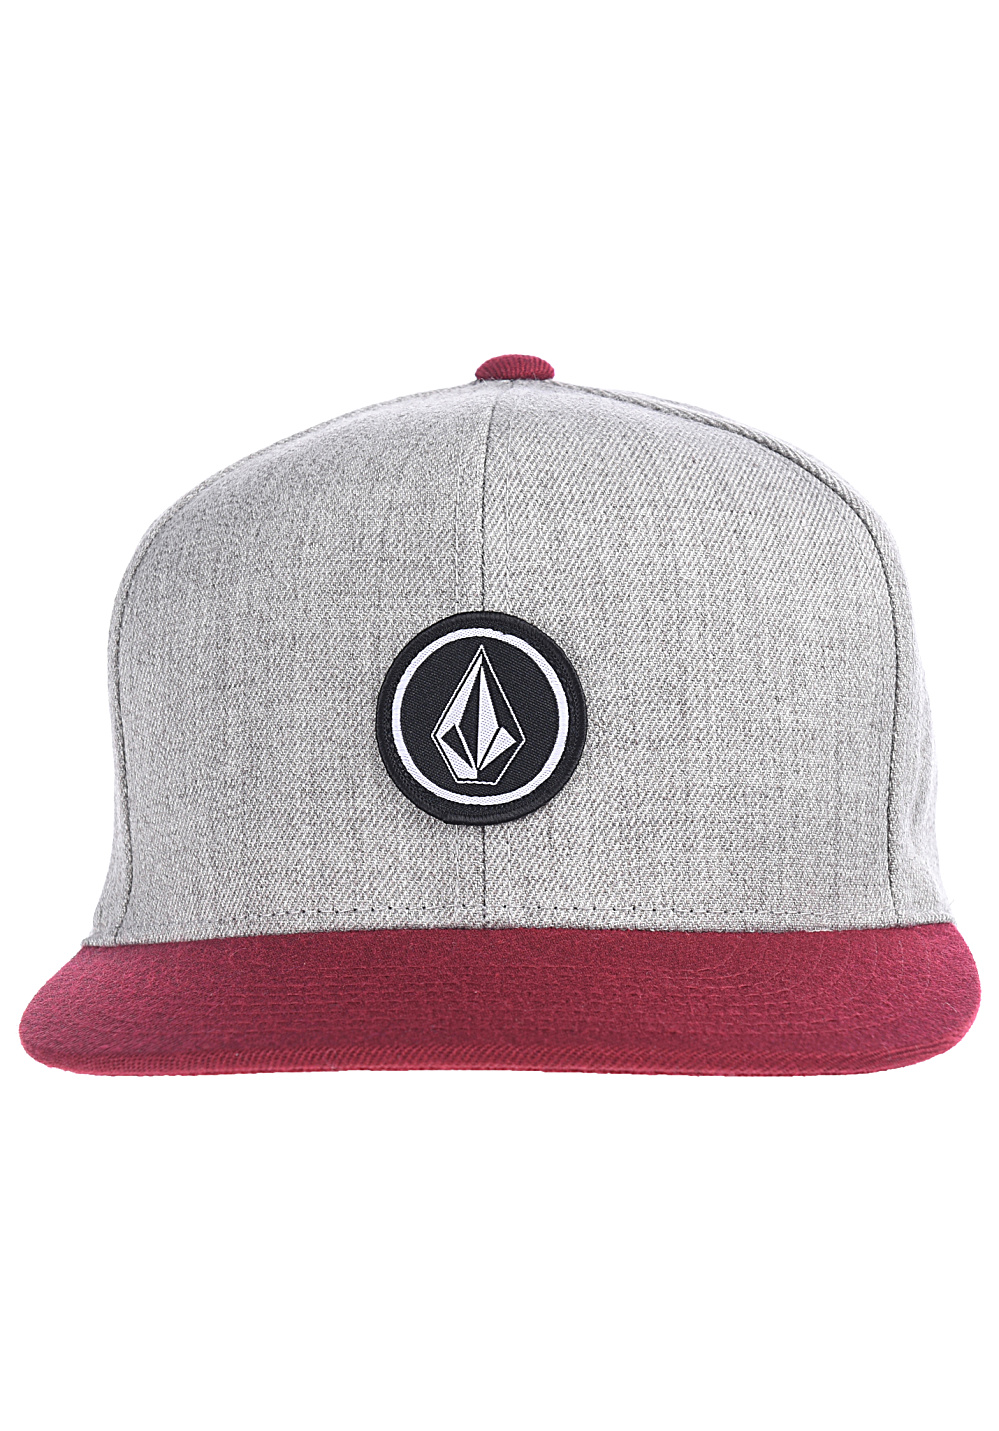 18216ed5dbfaa6 ... Snapback Caps · Volcom Quarter Twill - Snapback Cap for Men - Grey.  Back to Overview. 1; 2; 3; 4. Previous. Next